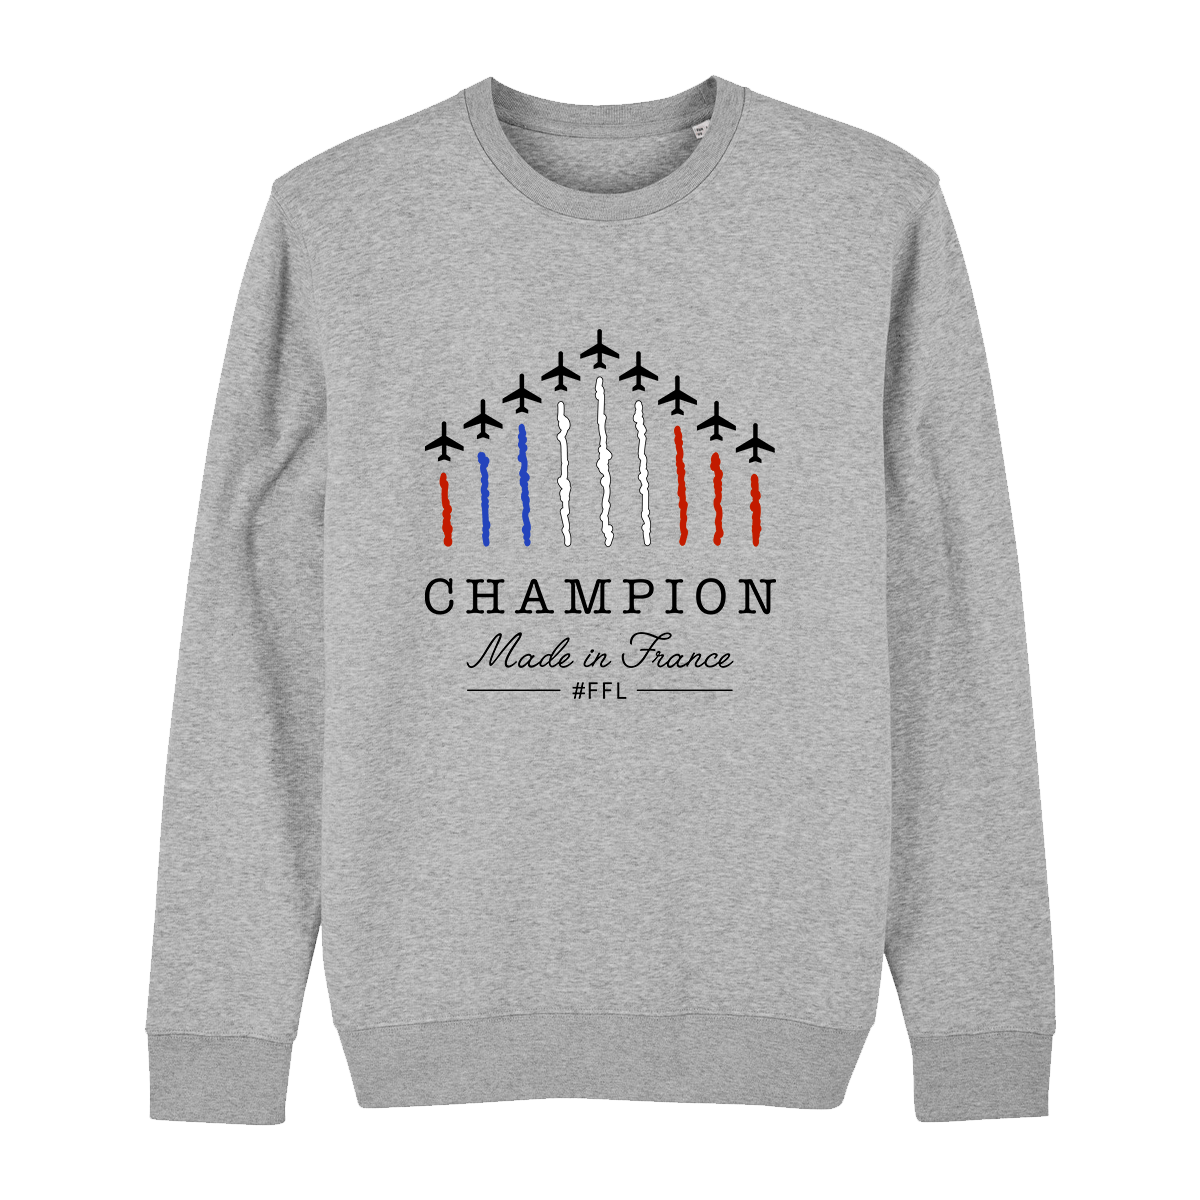 Crewneck Champion Made in France 1